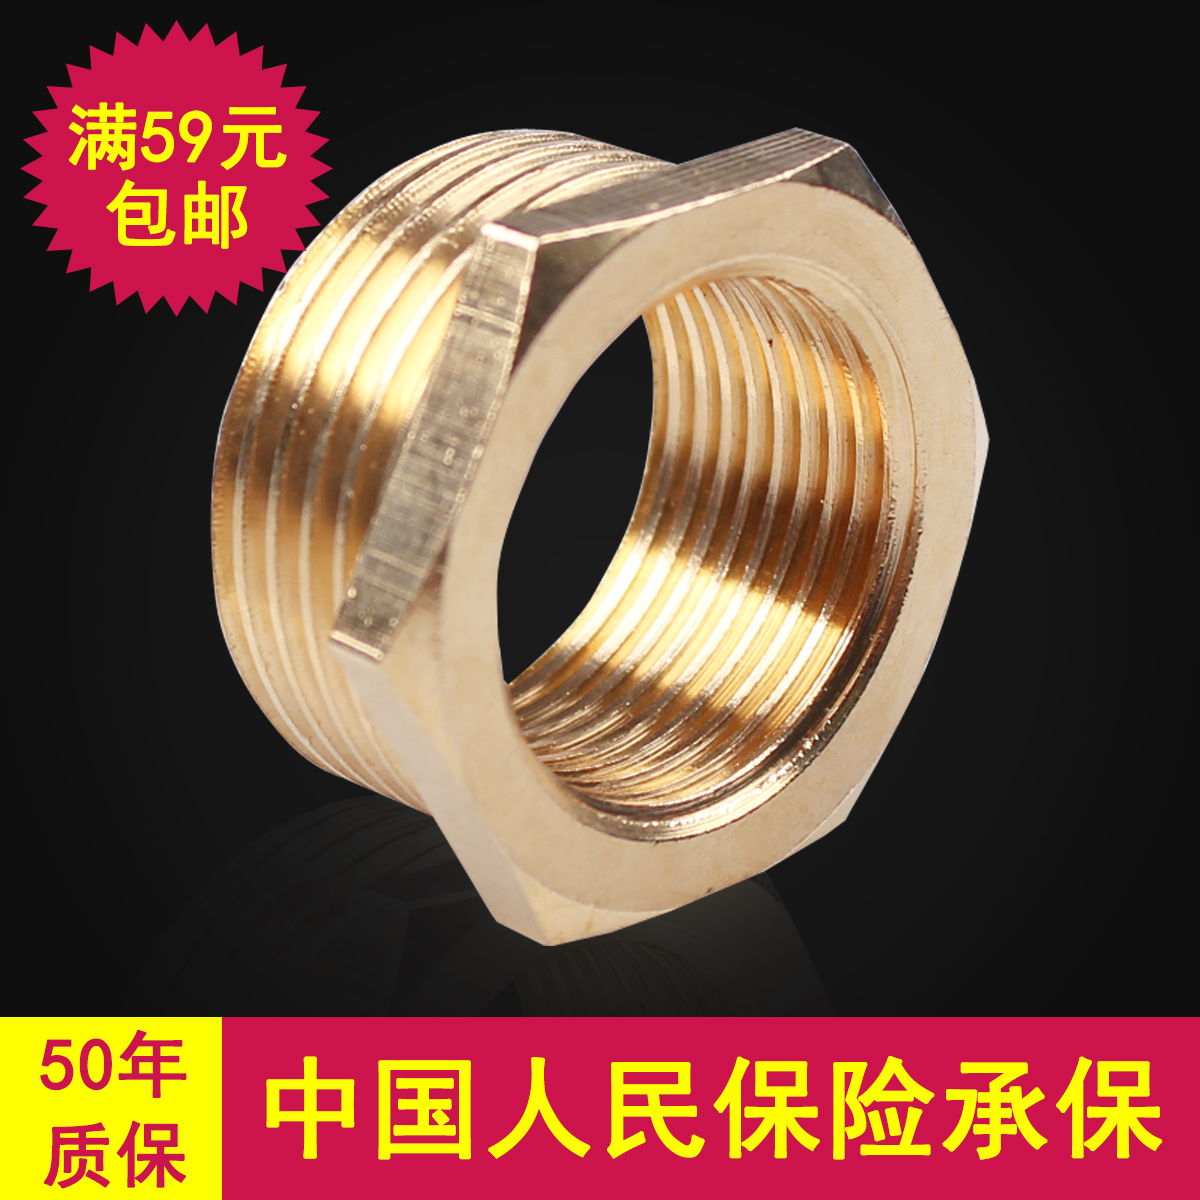 Hdrf copper plumbing fittings copper fittings copper bushing 1.2 inch 1.5 inch 2 inch copper fittings plumbing fittings